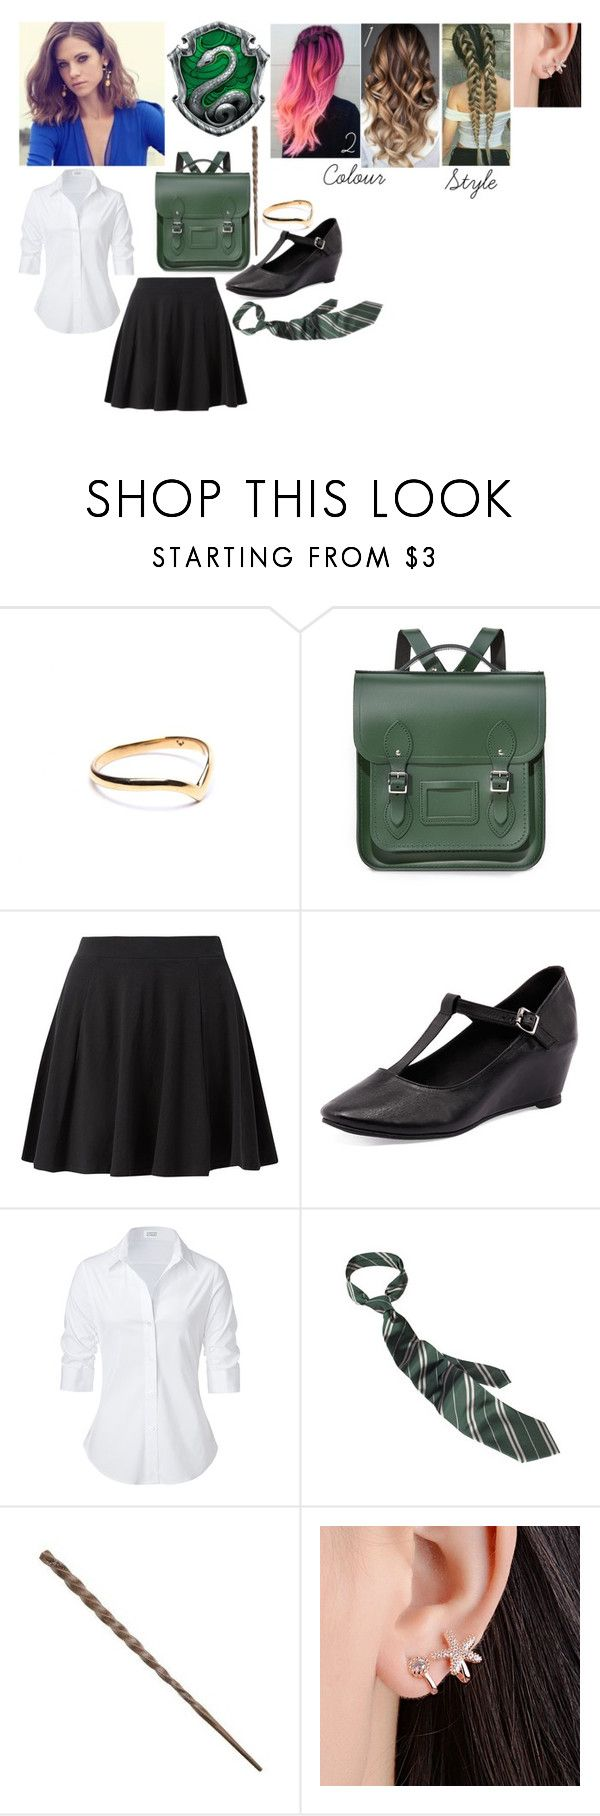 """""""Rosanna Willow Barrymore- Hogwarts Uniform"""" by the-fault-in-our-paper-towns ❤ liked on Polyvore featuring Puck Wanderlust, The Cambridge Satchel Company, Zensu, Steffen Schraut and CO"""